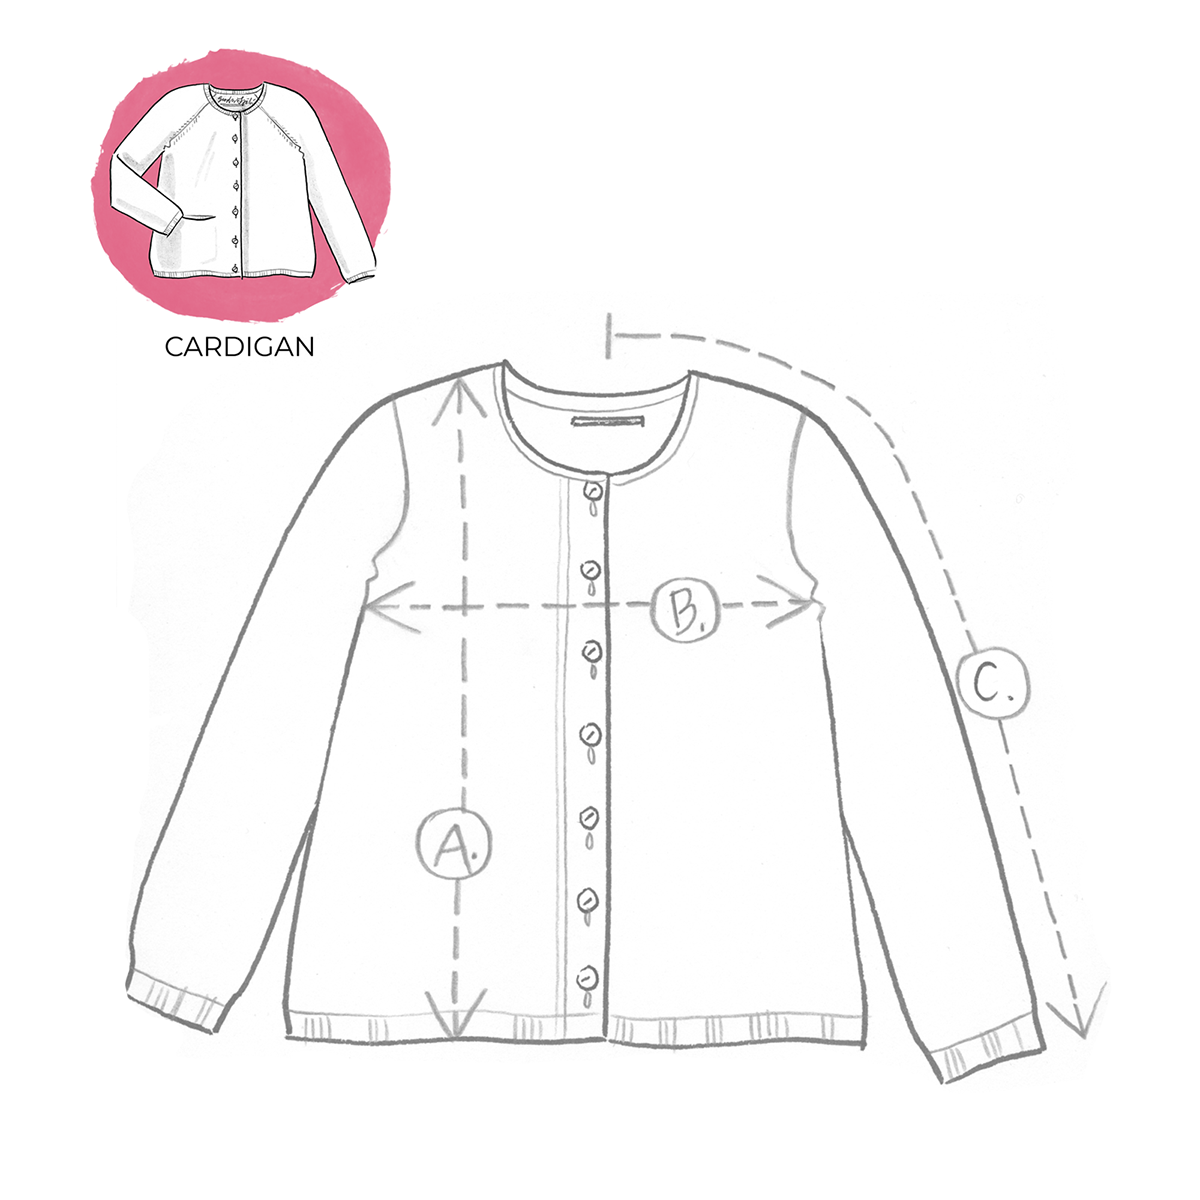 measurment guide_icon_illustration_Cardigan.png